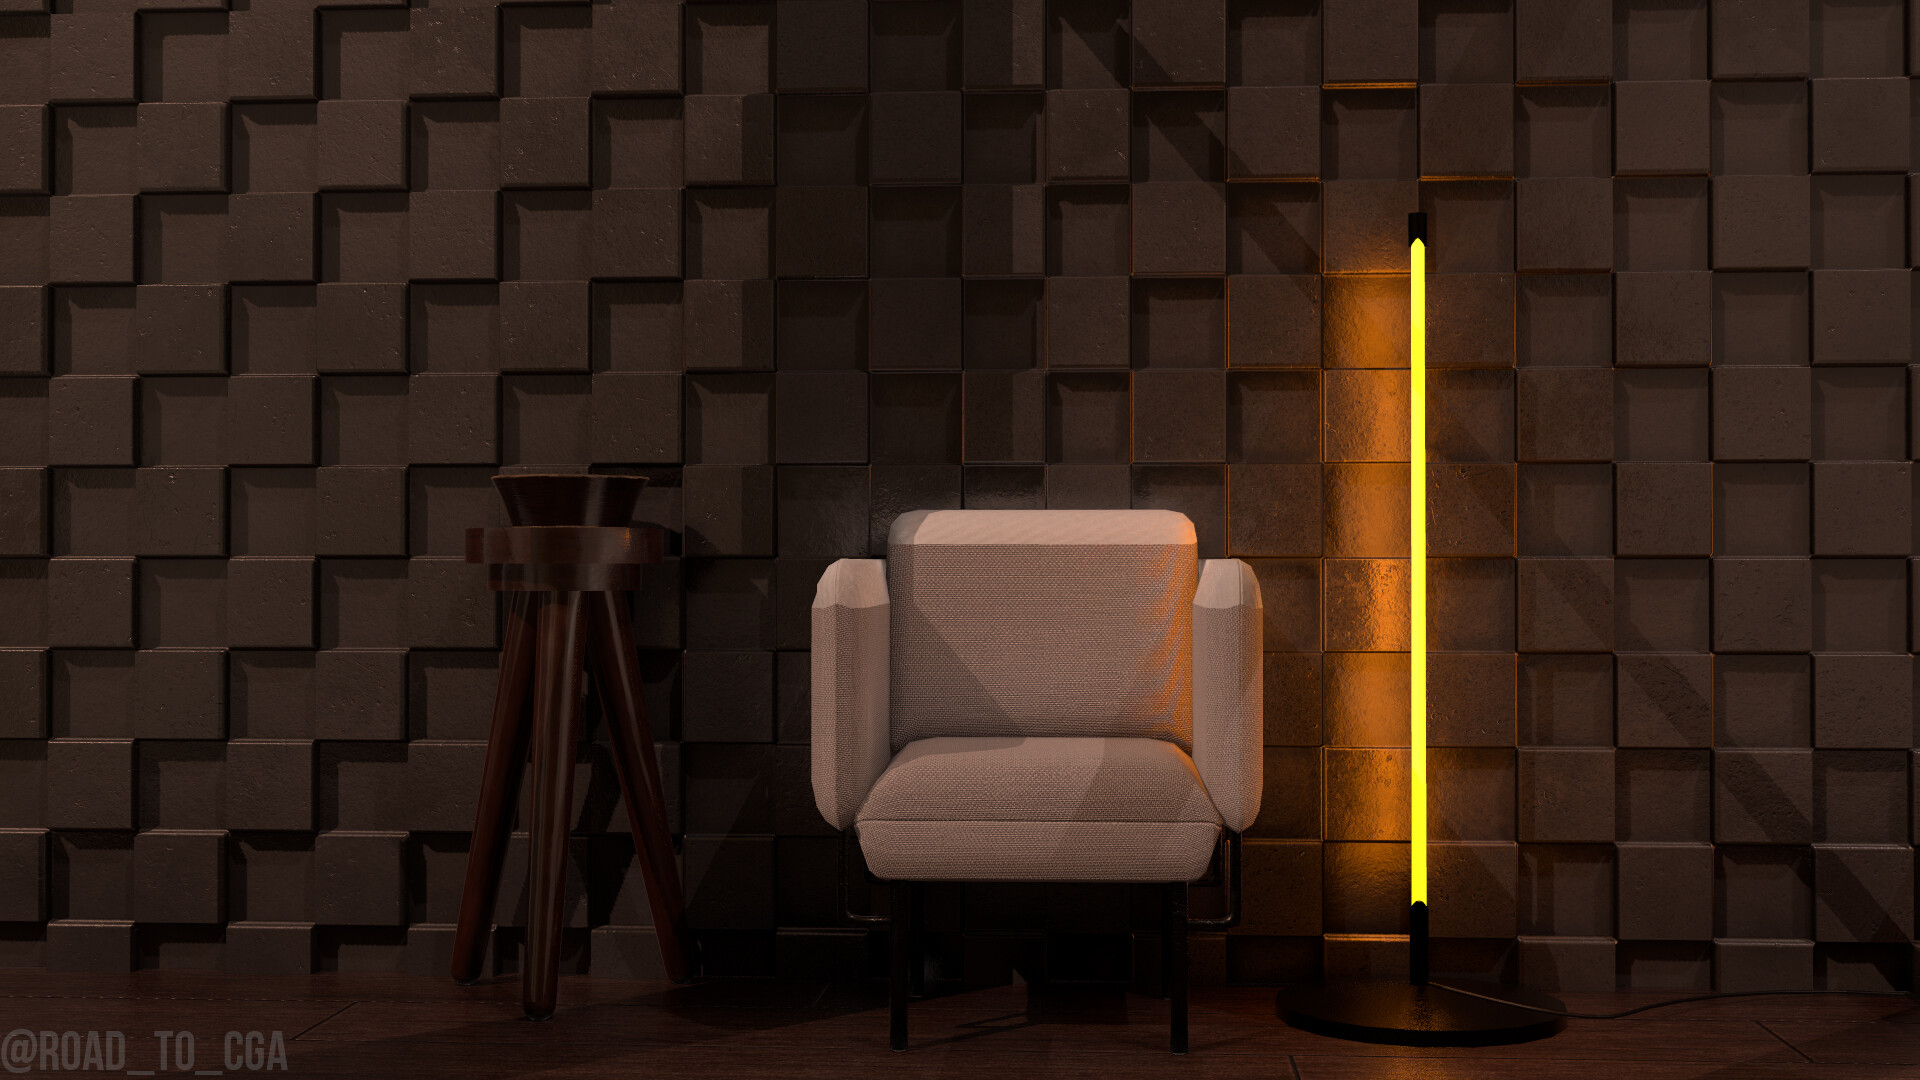 General 1920x1080 Rodrigo De La Rosa Esteban render texture digital art chair interior wall